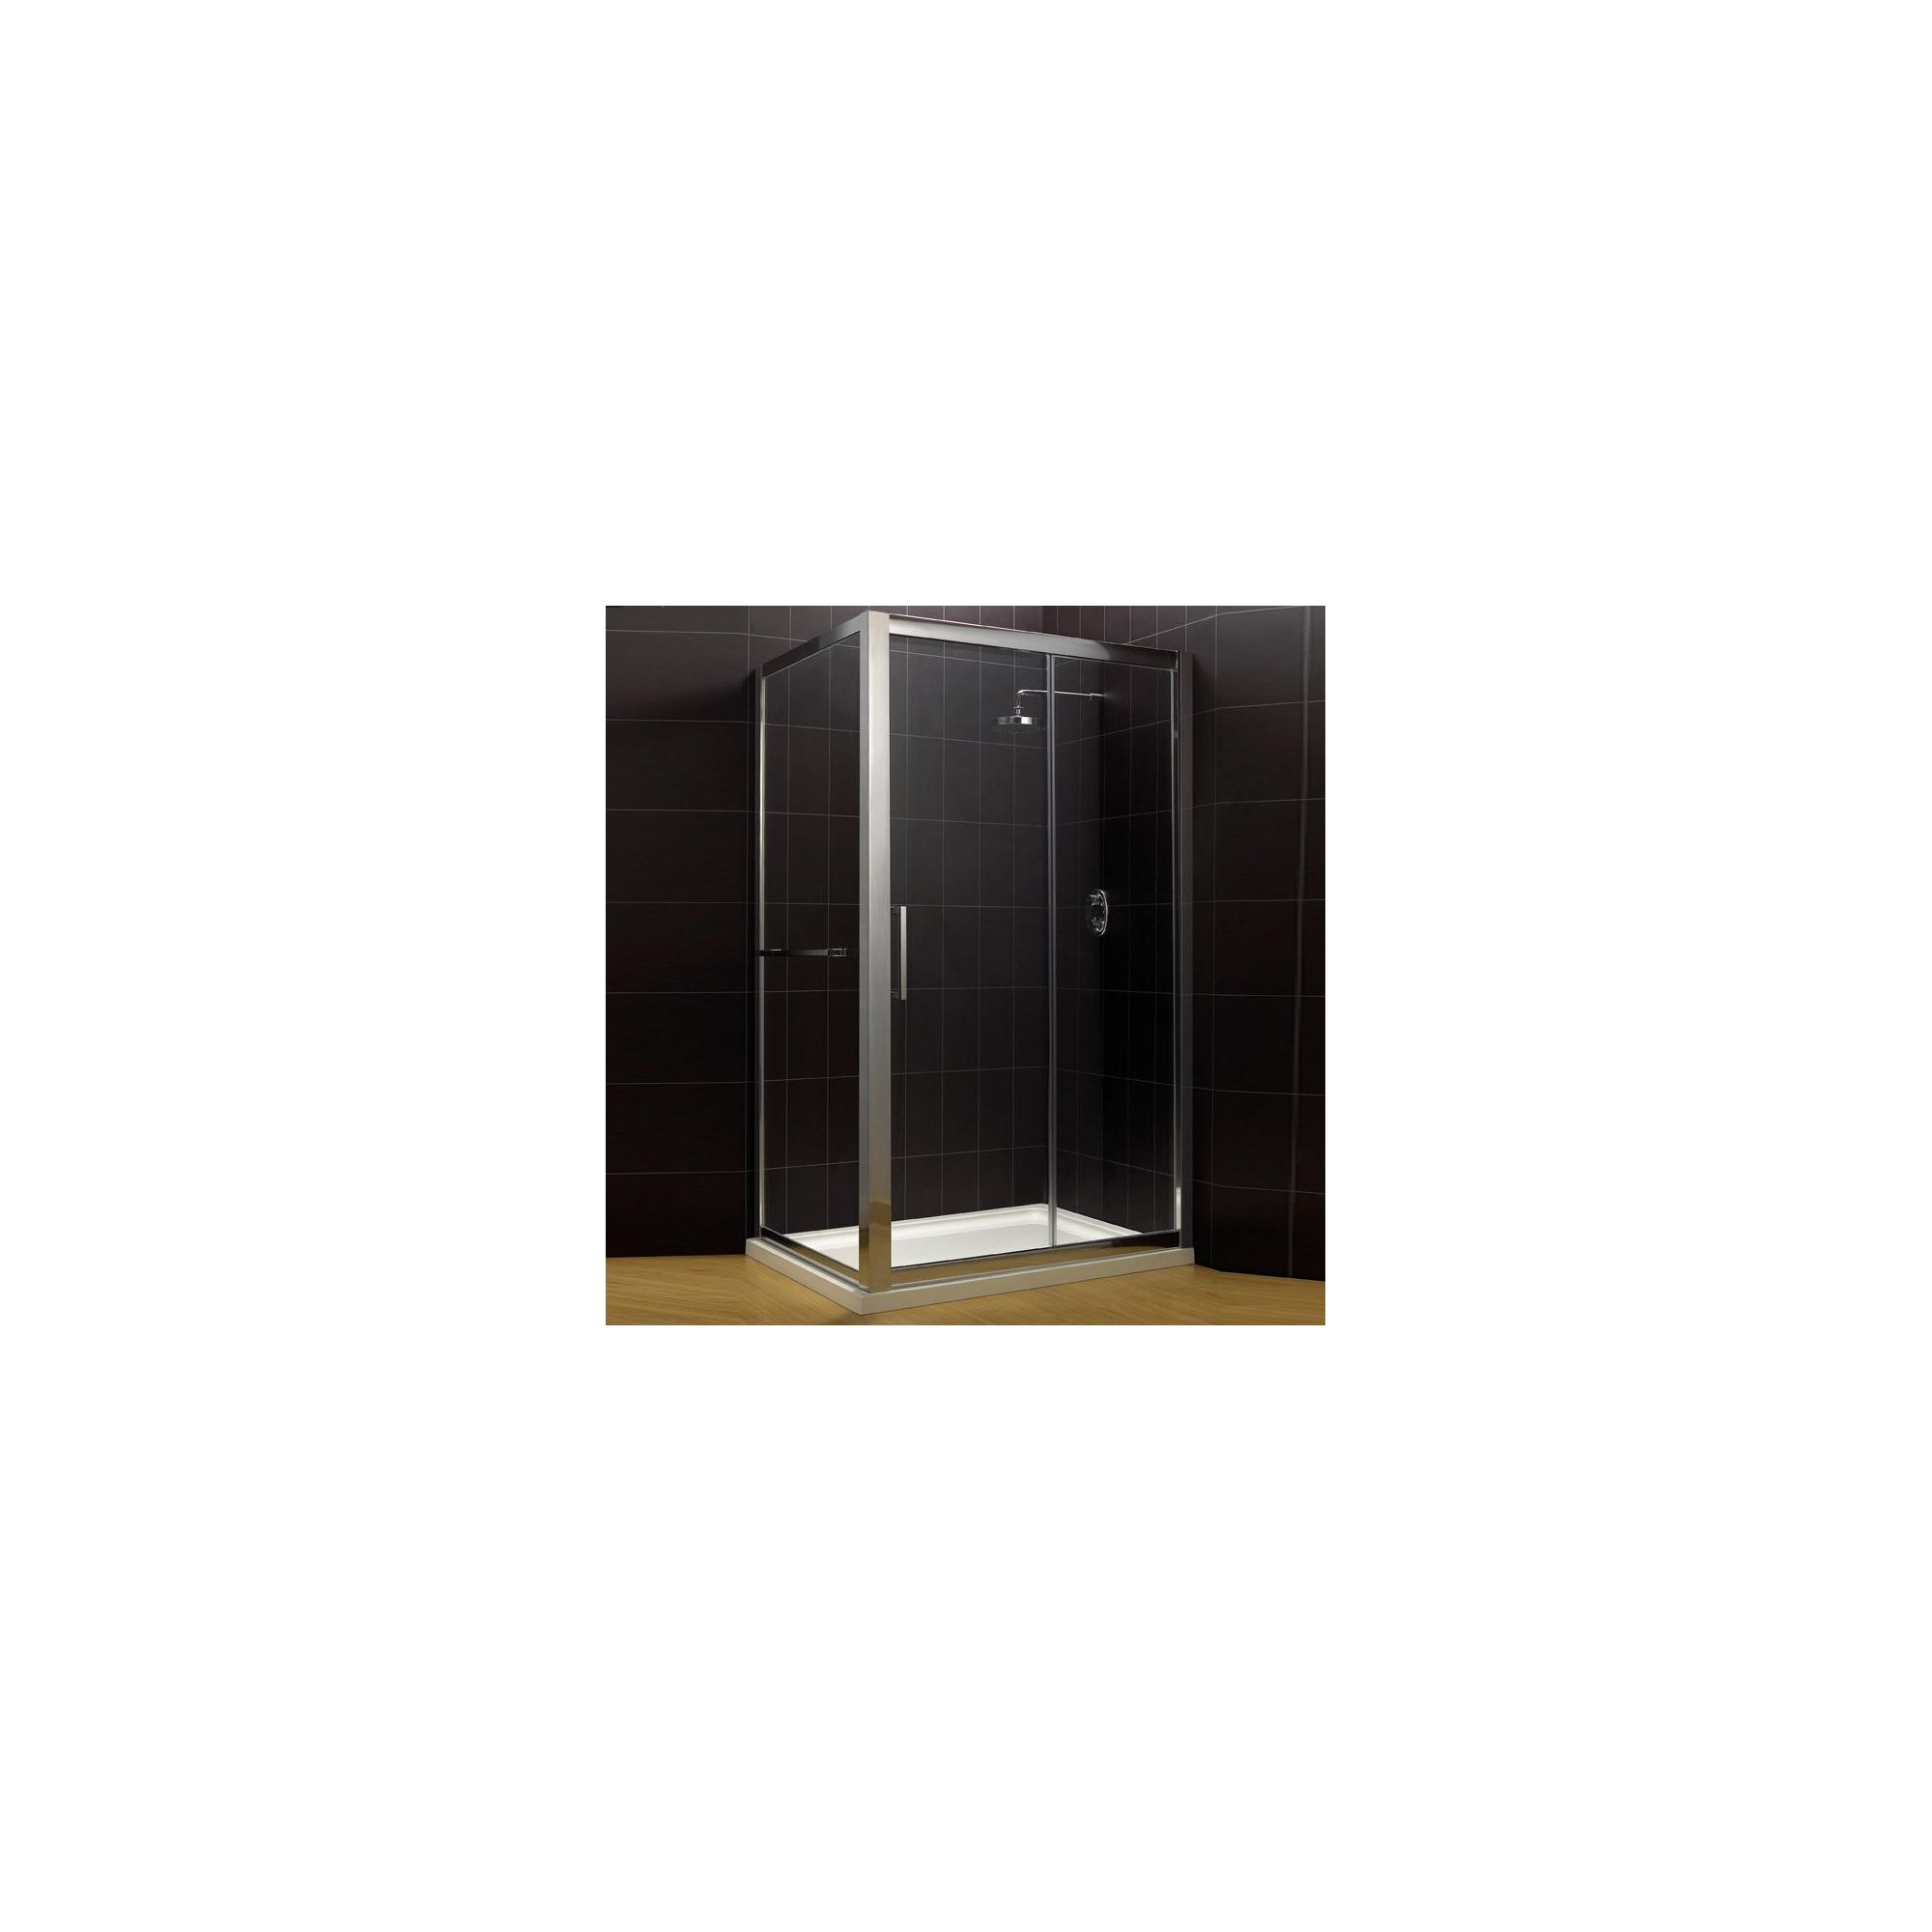 Duchy Supreme Silver Sliding Door Shower Enclosure with Towel Rail, 1200mm x 700mm, Standard Tray, 8mm Glass at Tesco Direct